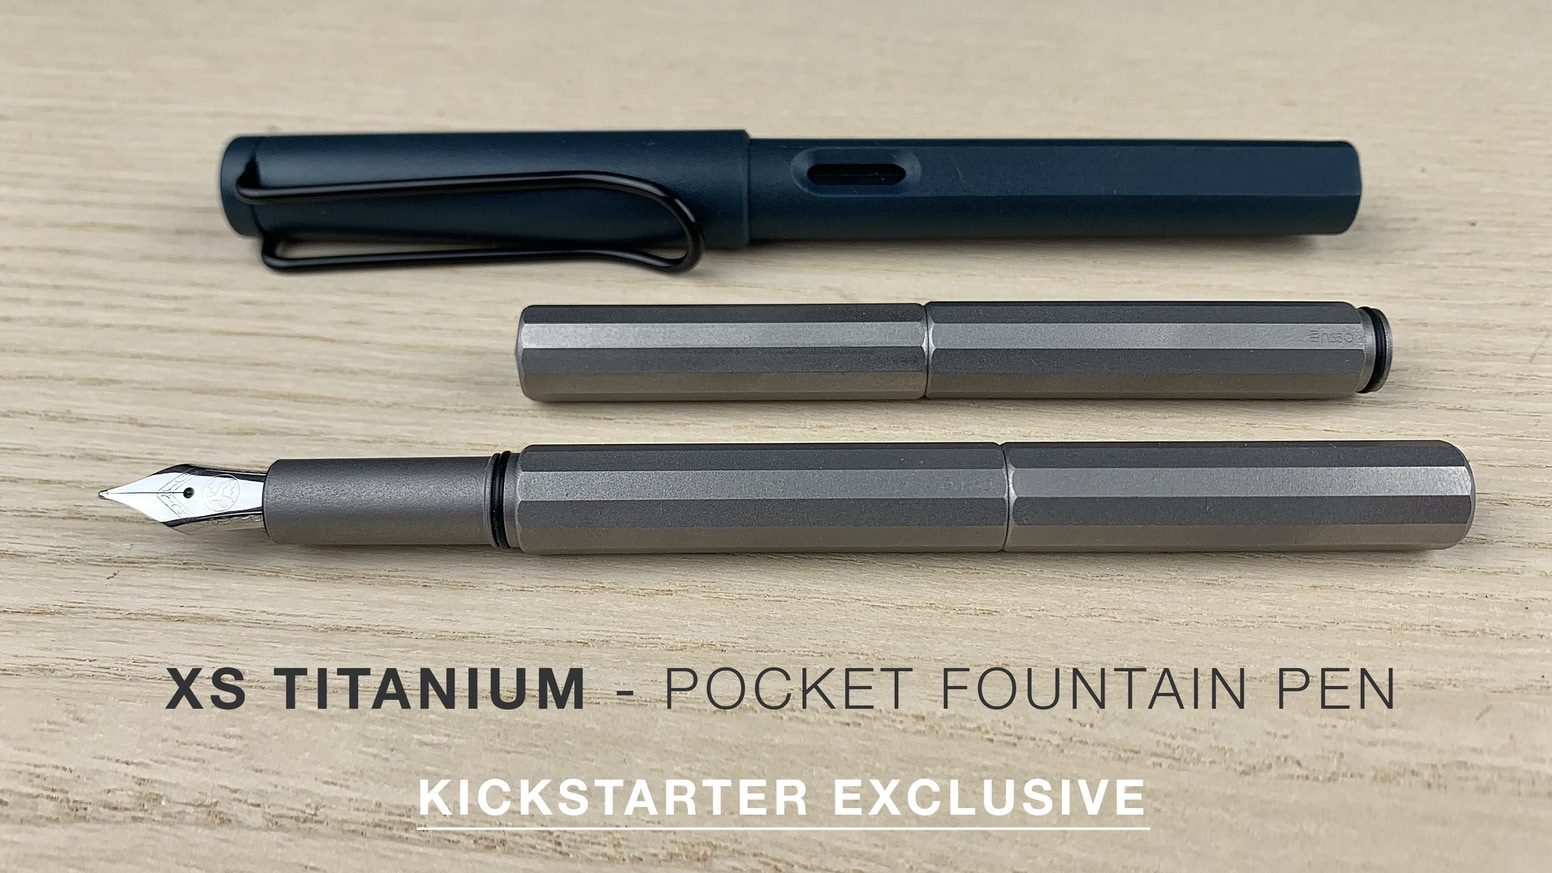 Version 2.0 of our compact fountain pen. Re-engineered design in matte Titanium. Only available on Kickstarter.